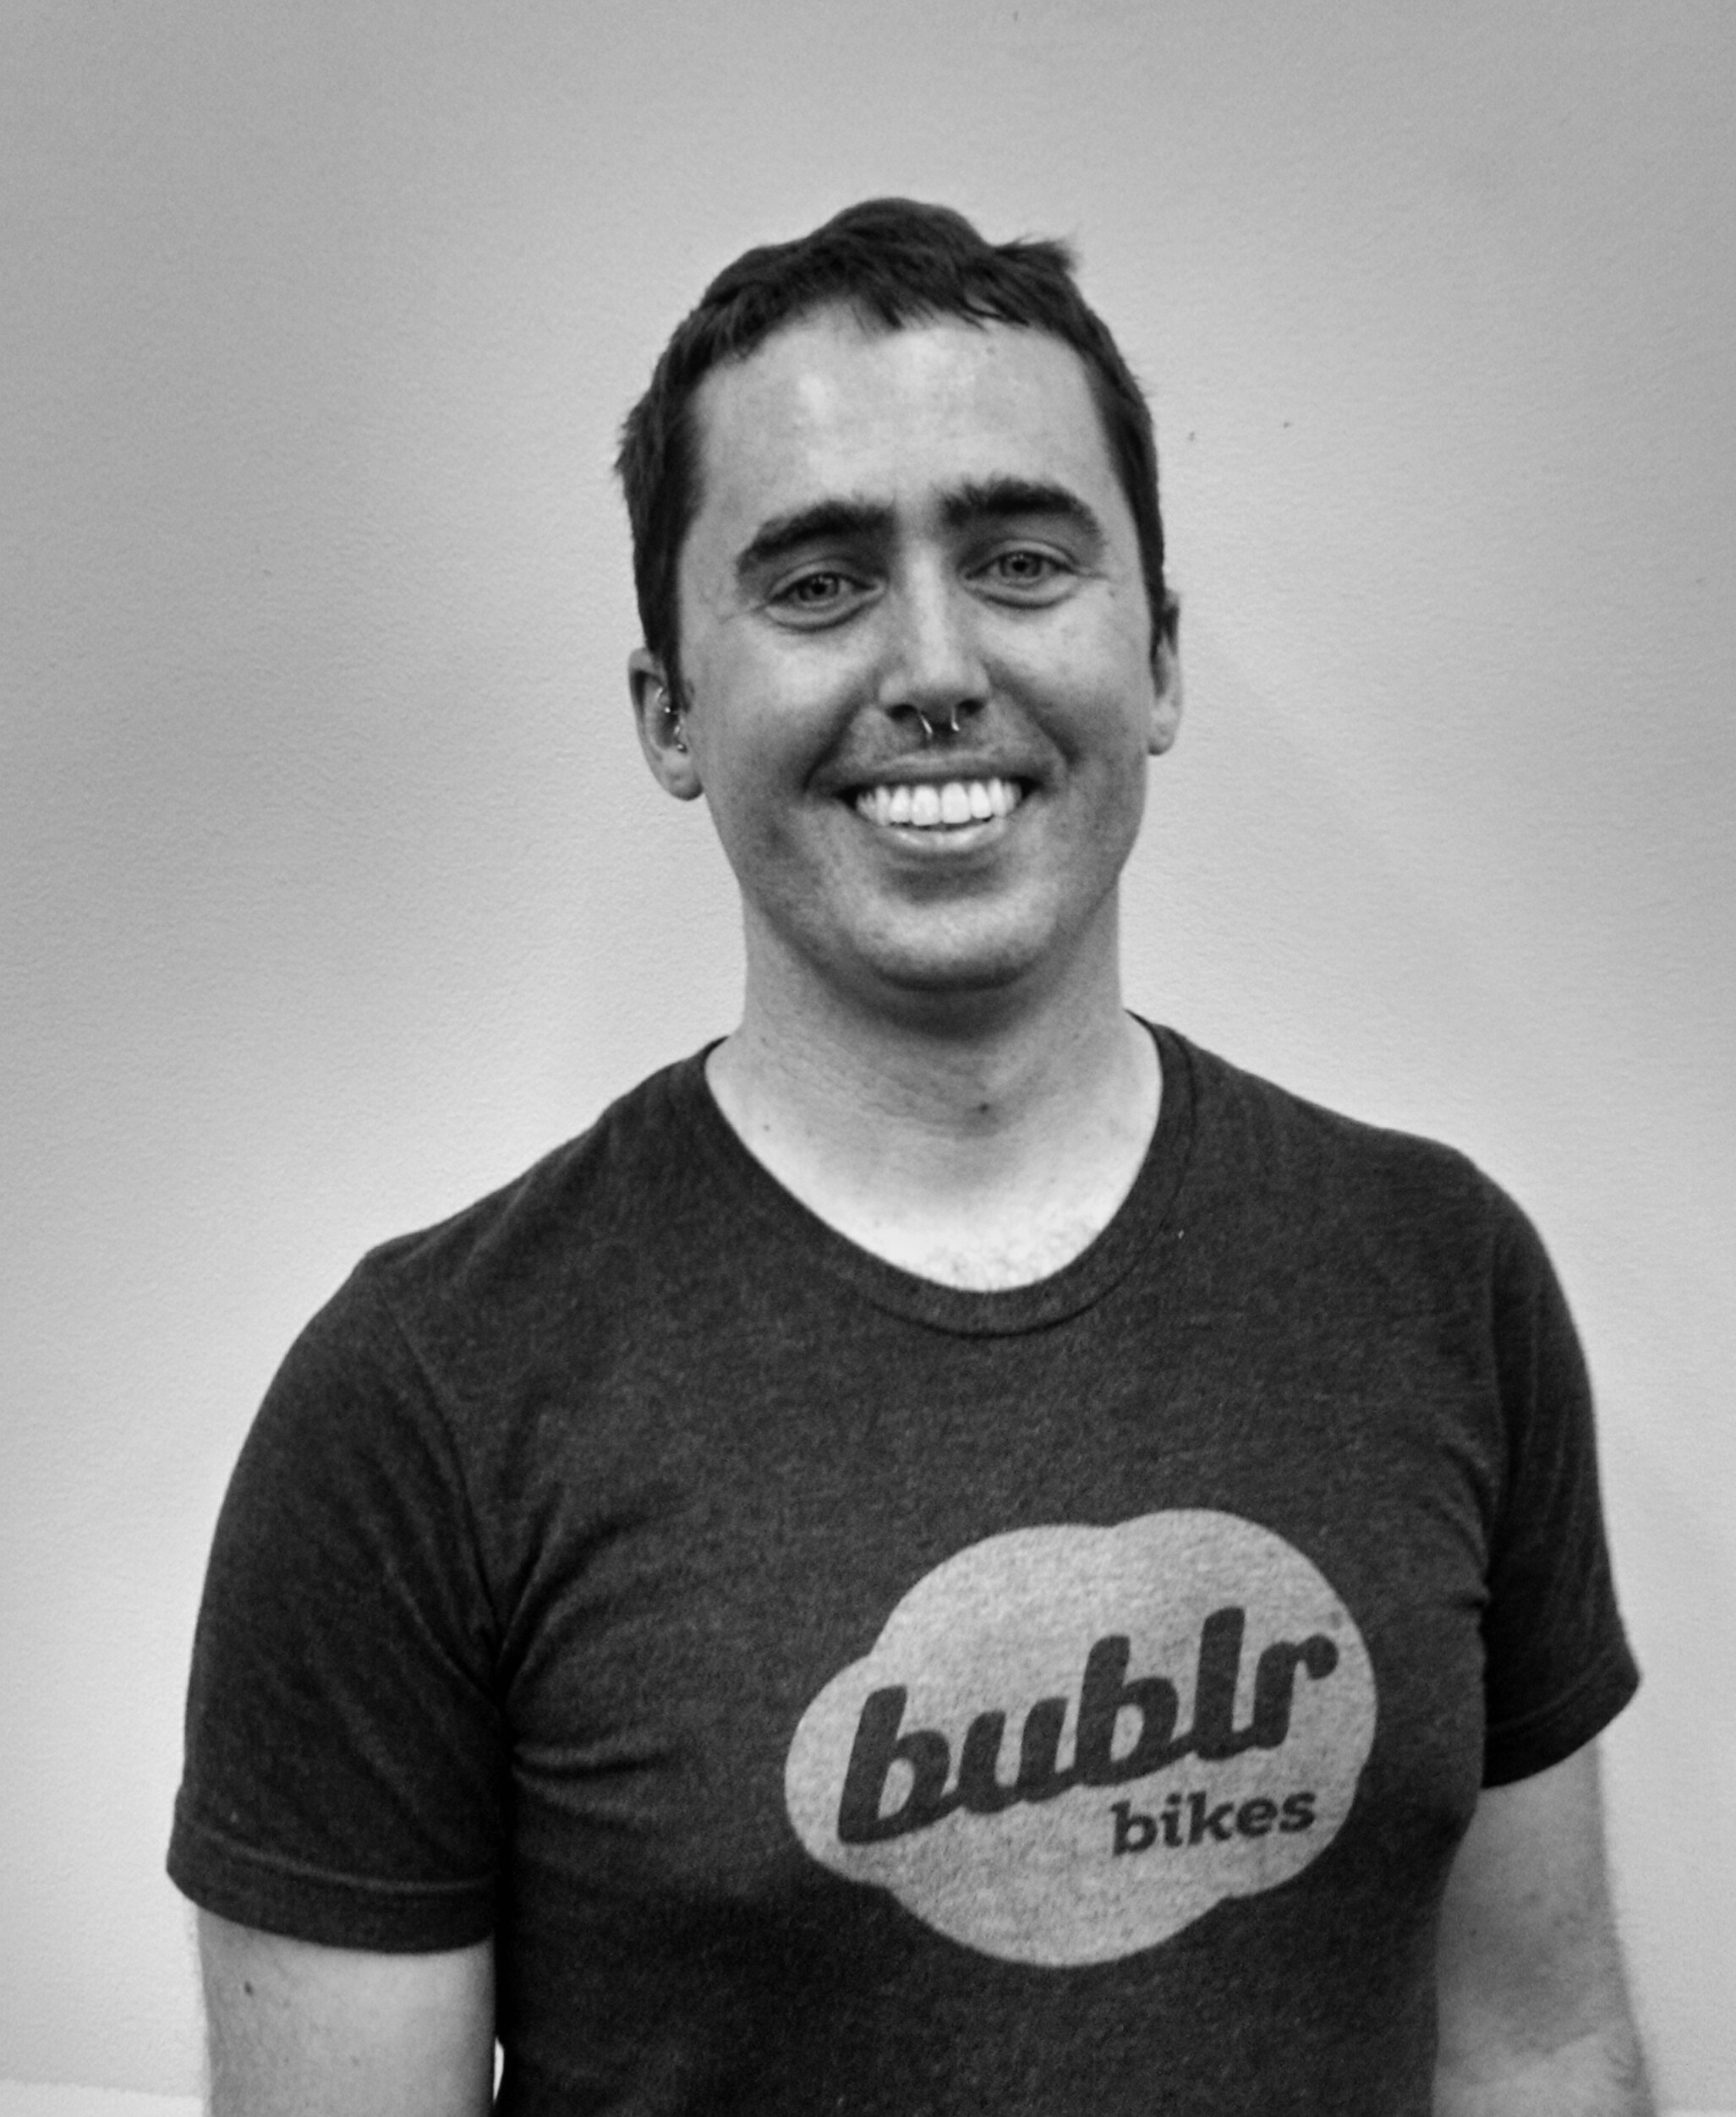 Bublr Bikes Names New Executive Director